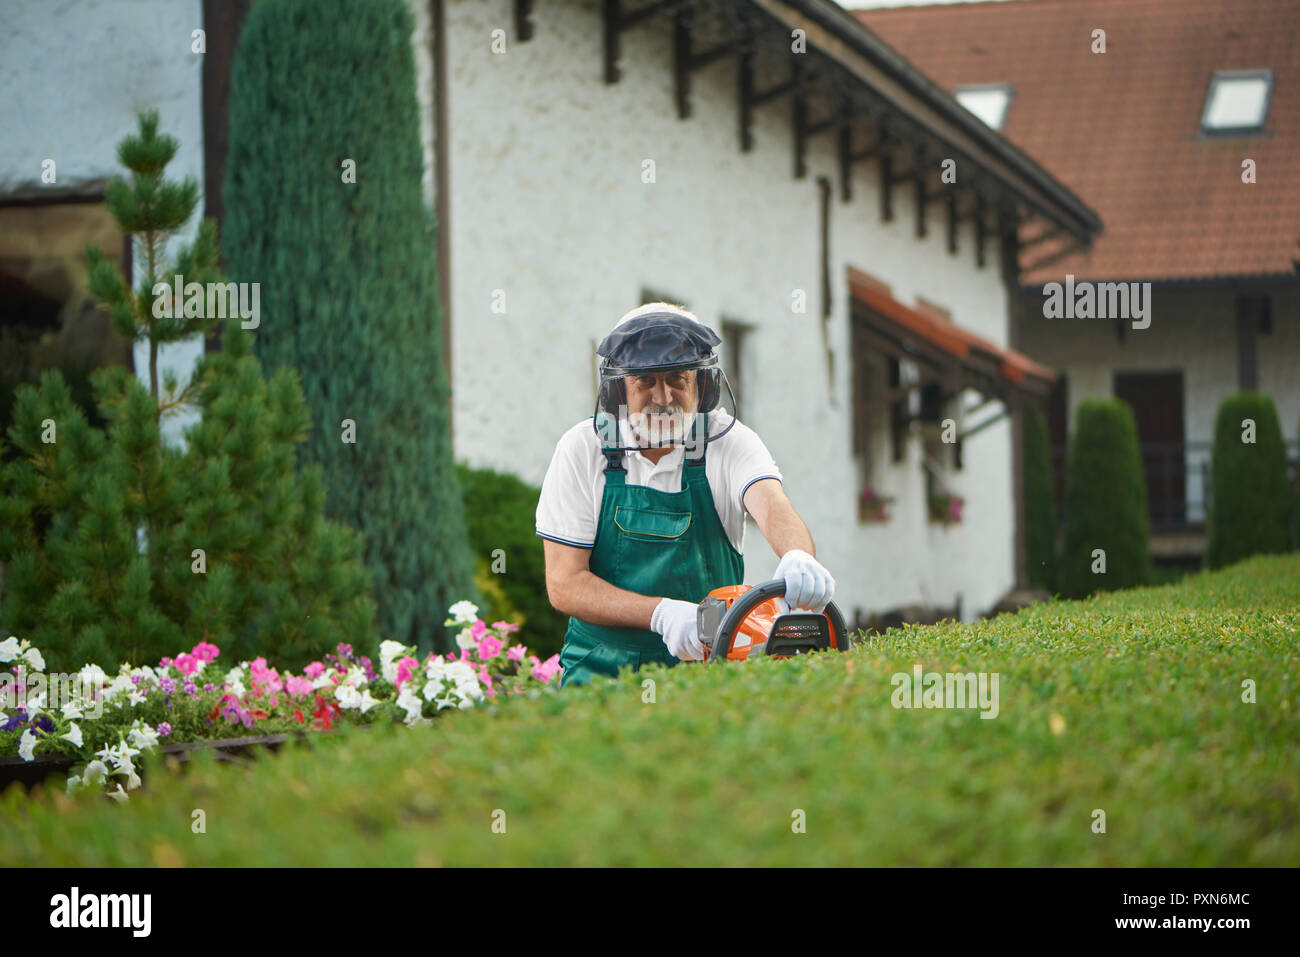 Professional older gardener in uniform cutting bushes with clippers and looking at camera. Worker, wearing in uniform with safety mask and protective headphones landscaping bushes in backyard. - Stock Image